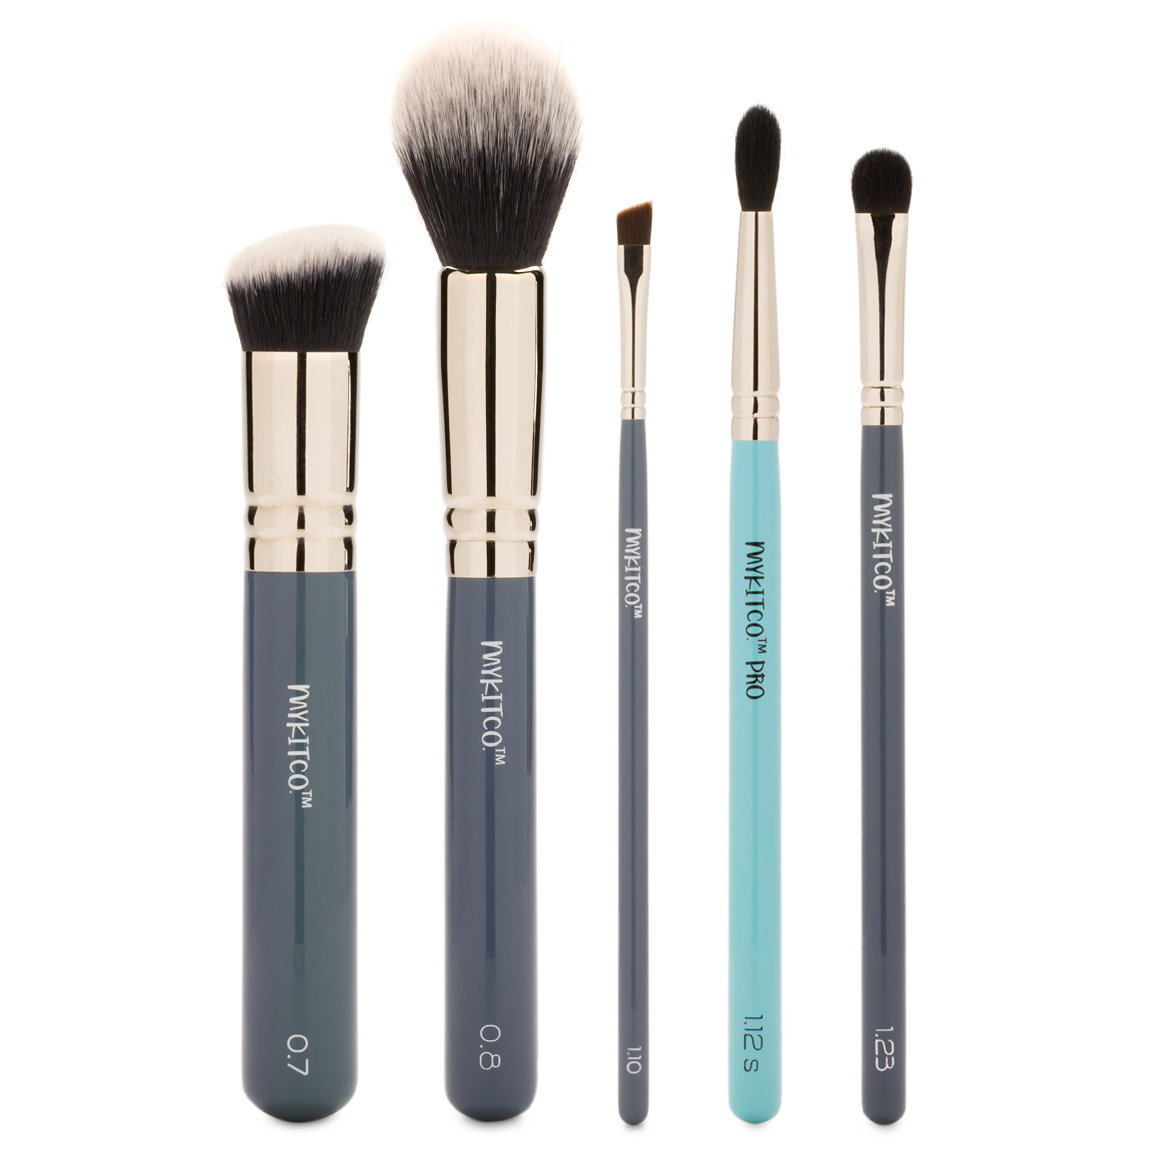 MYKITCO. My Essential Makeup Brush Set product swatch.